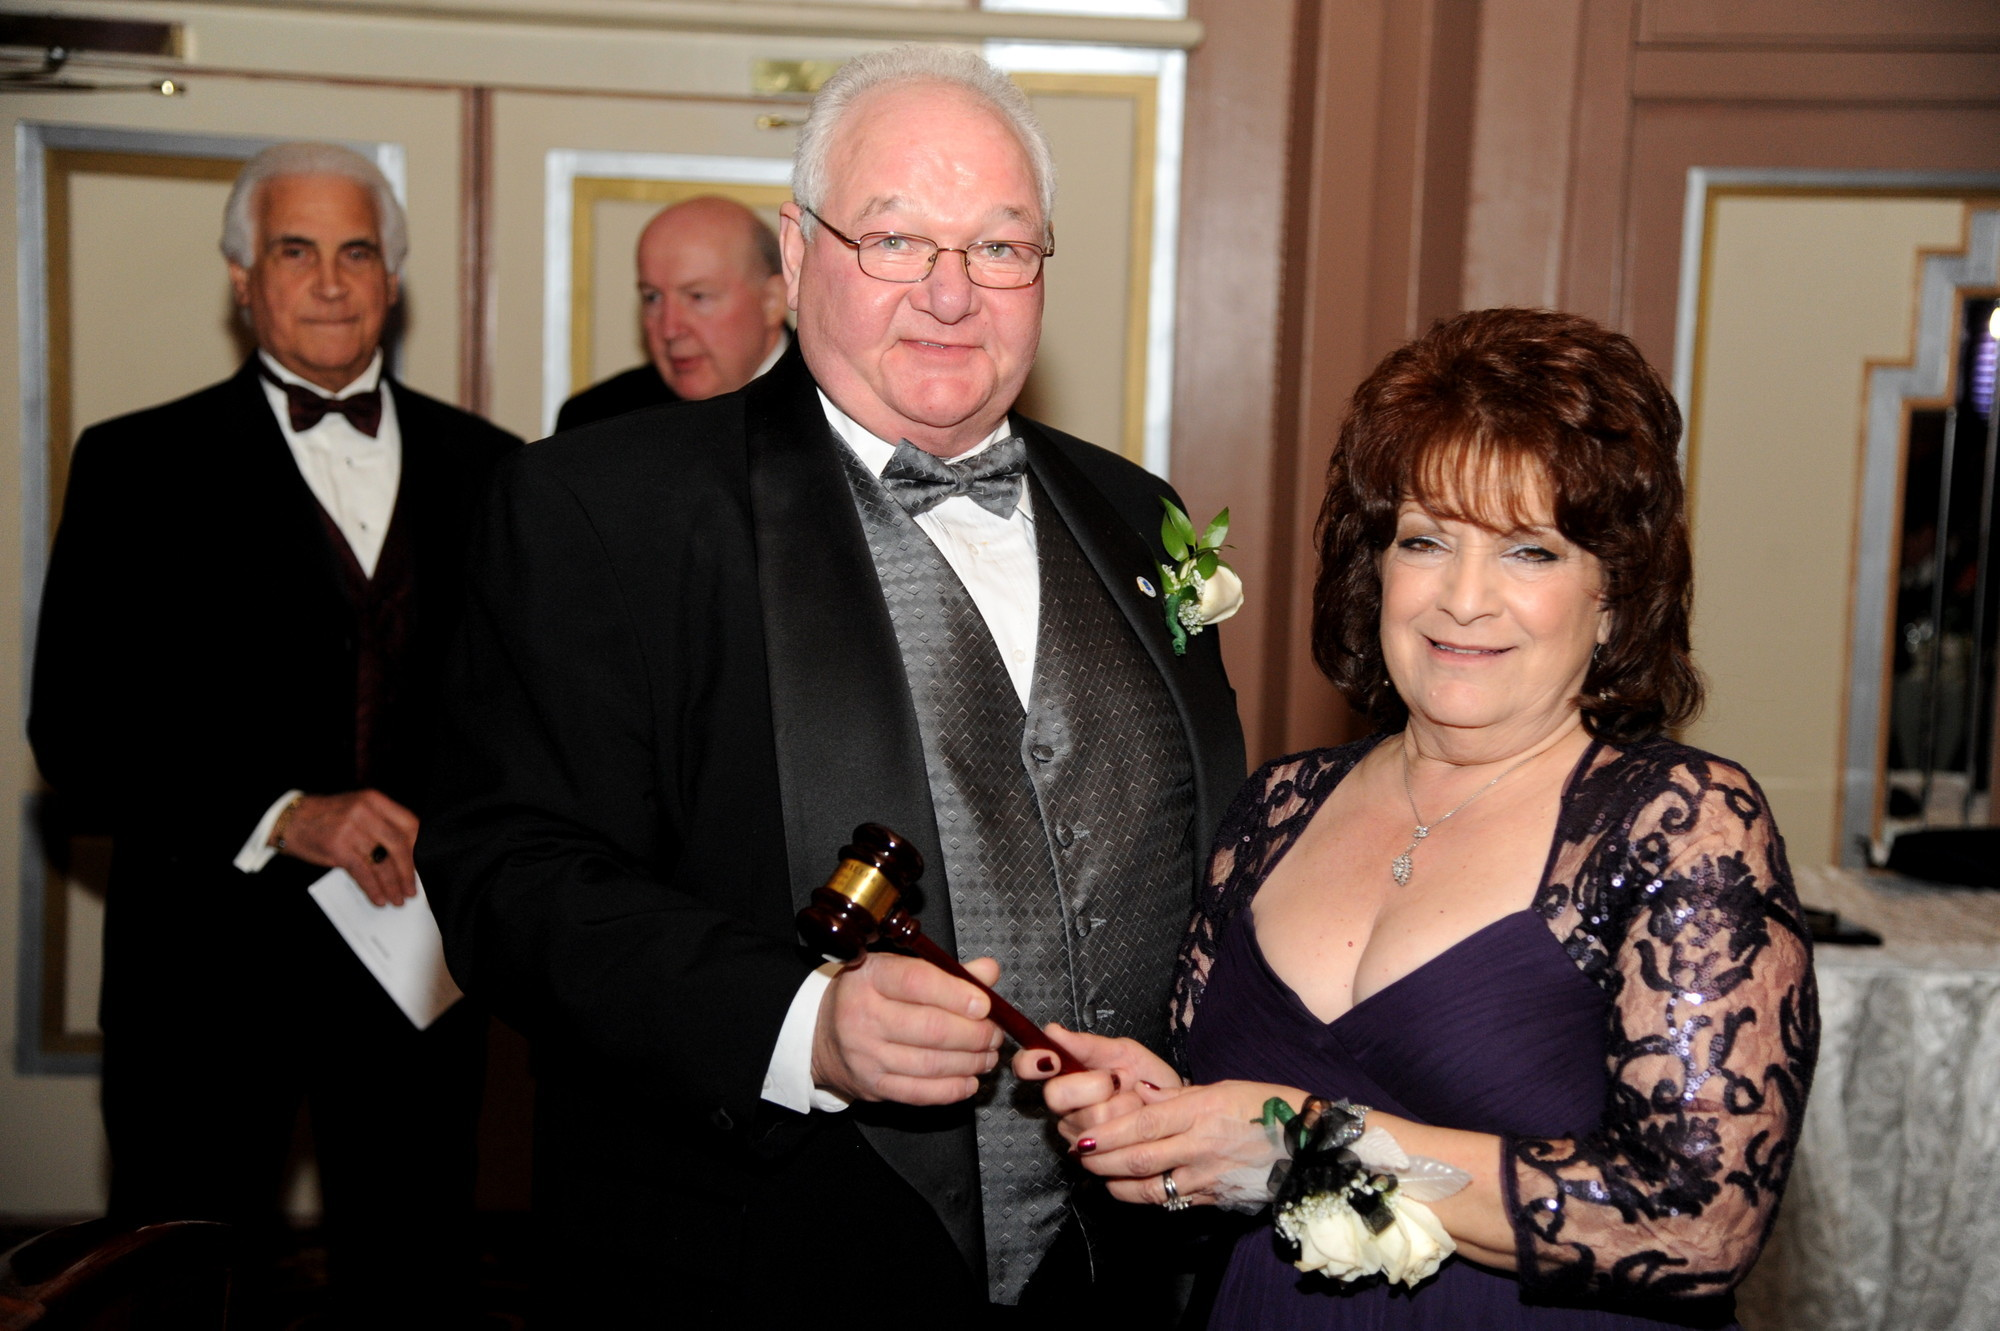 Stephen Haller became the new president of the East Meadow of Chamber of Commerce on Jan. 24, succeeding Dolores Rome.